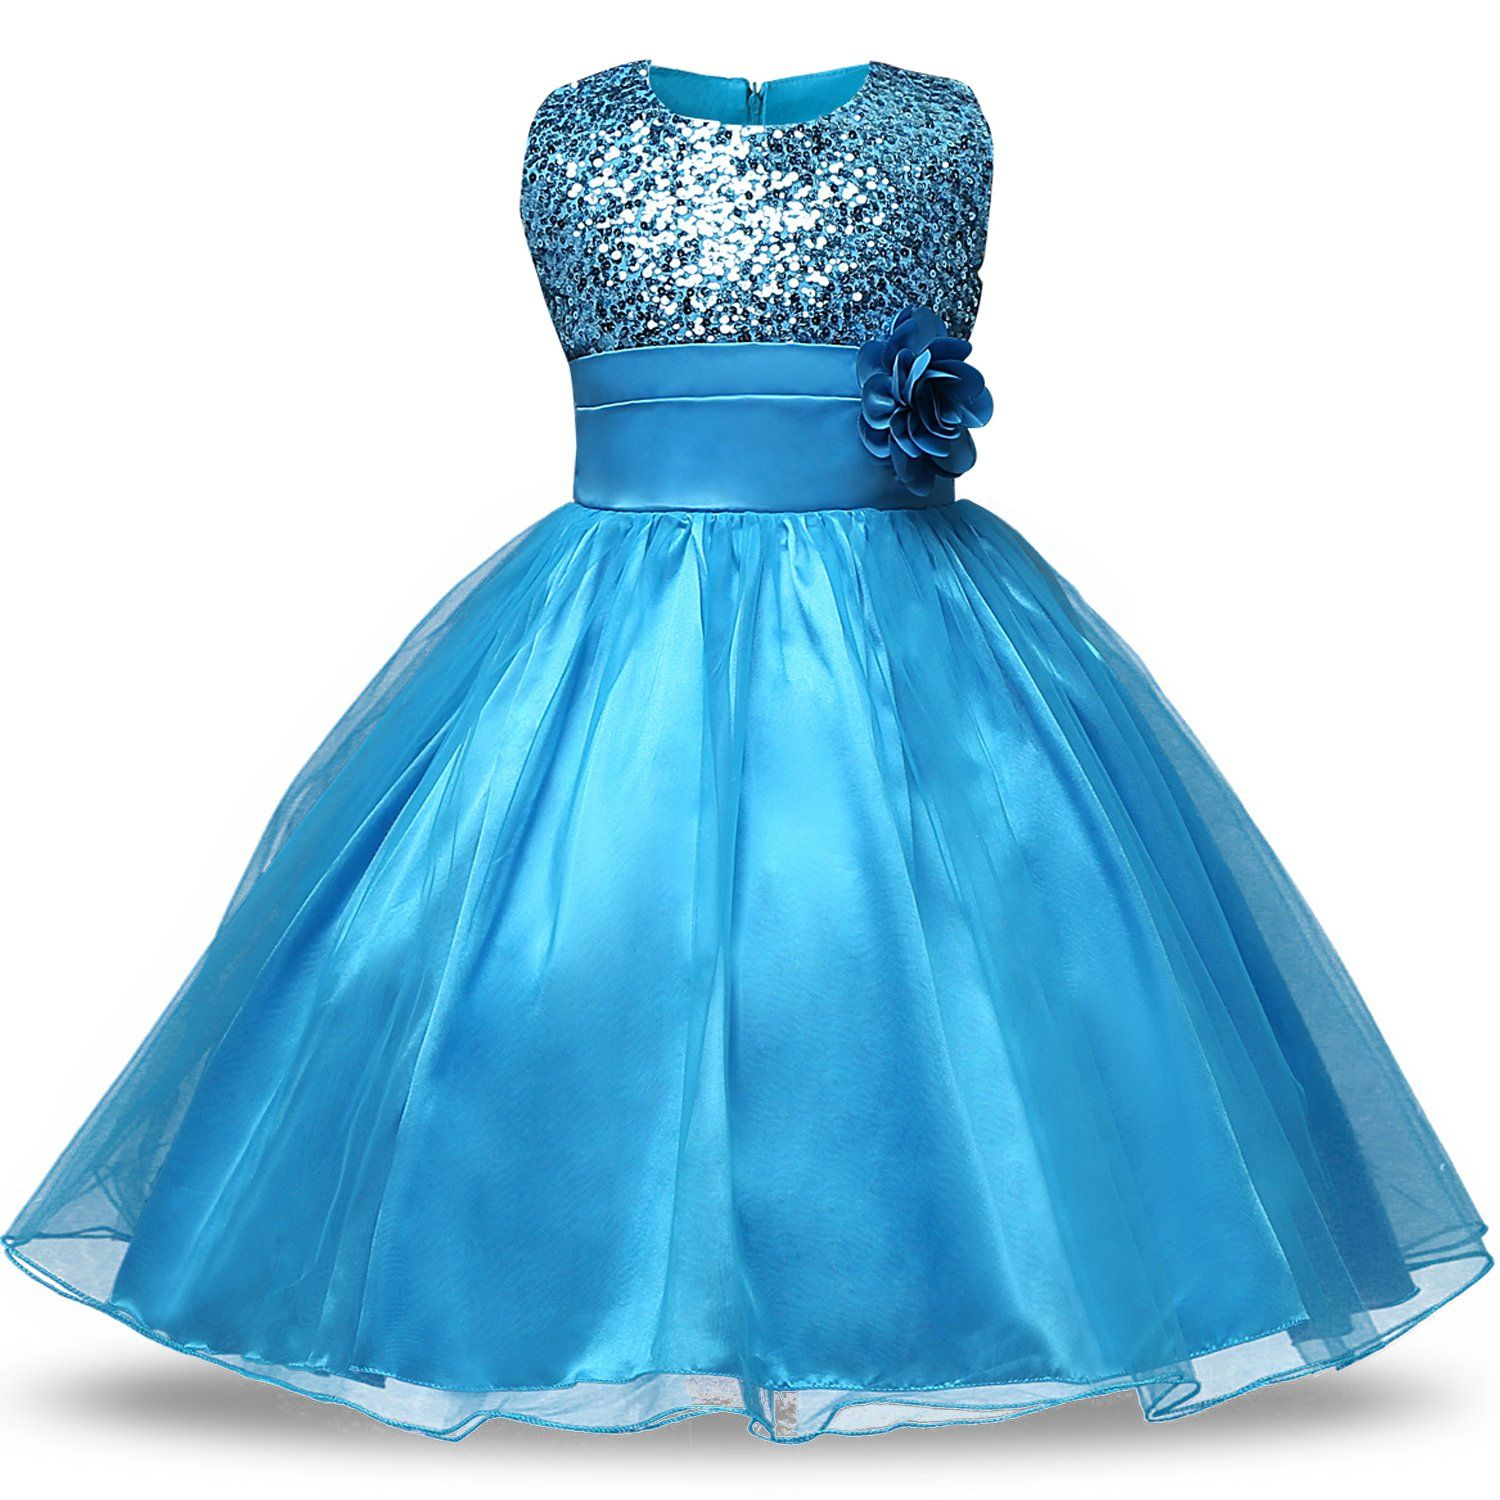 NNJXD Girl Flower Sequin Princess Tutu Tulle Baby Party Dress Size 3 ...